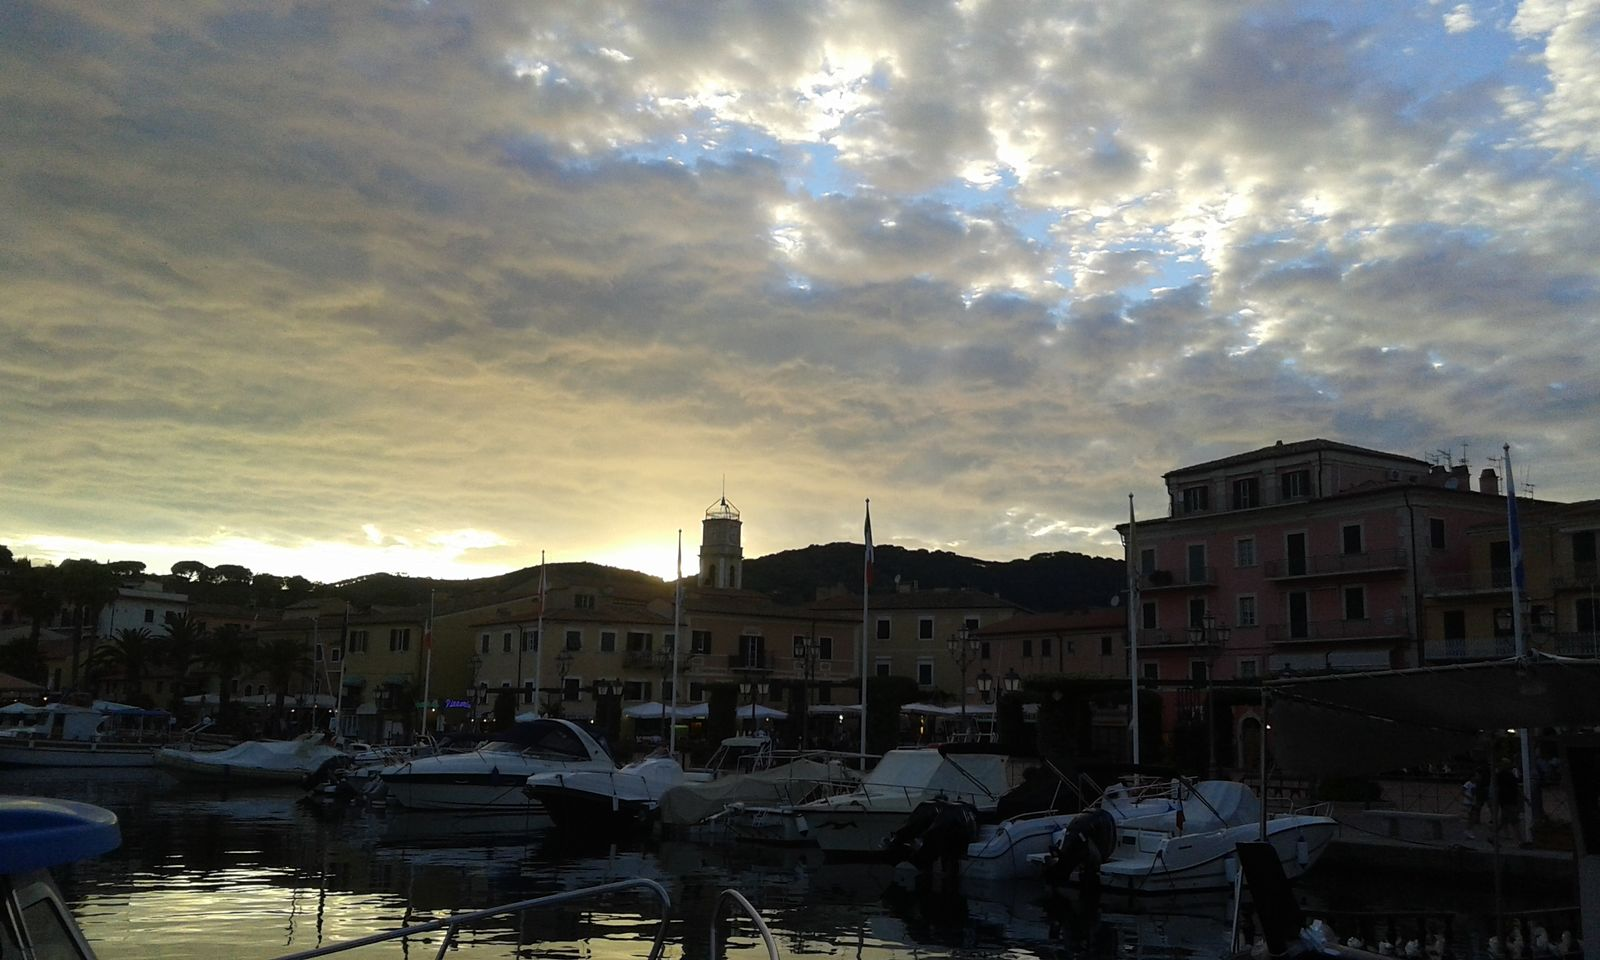 Porto Azzurro - The echo of a 400-year history